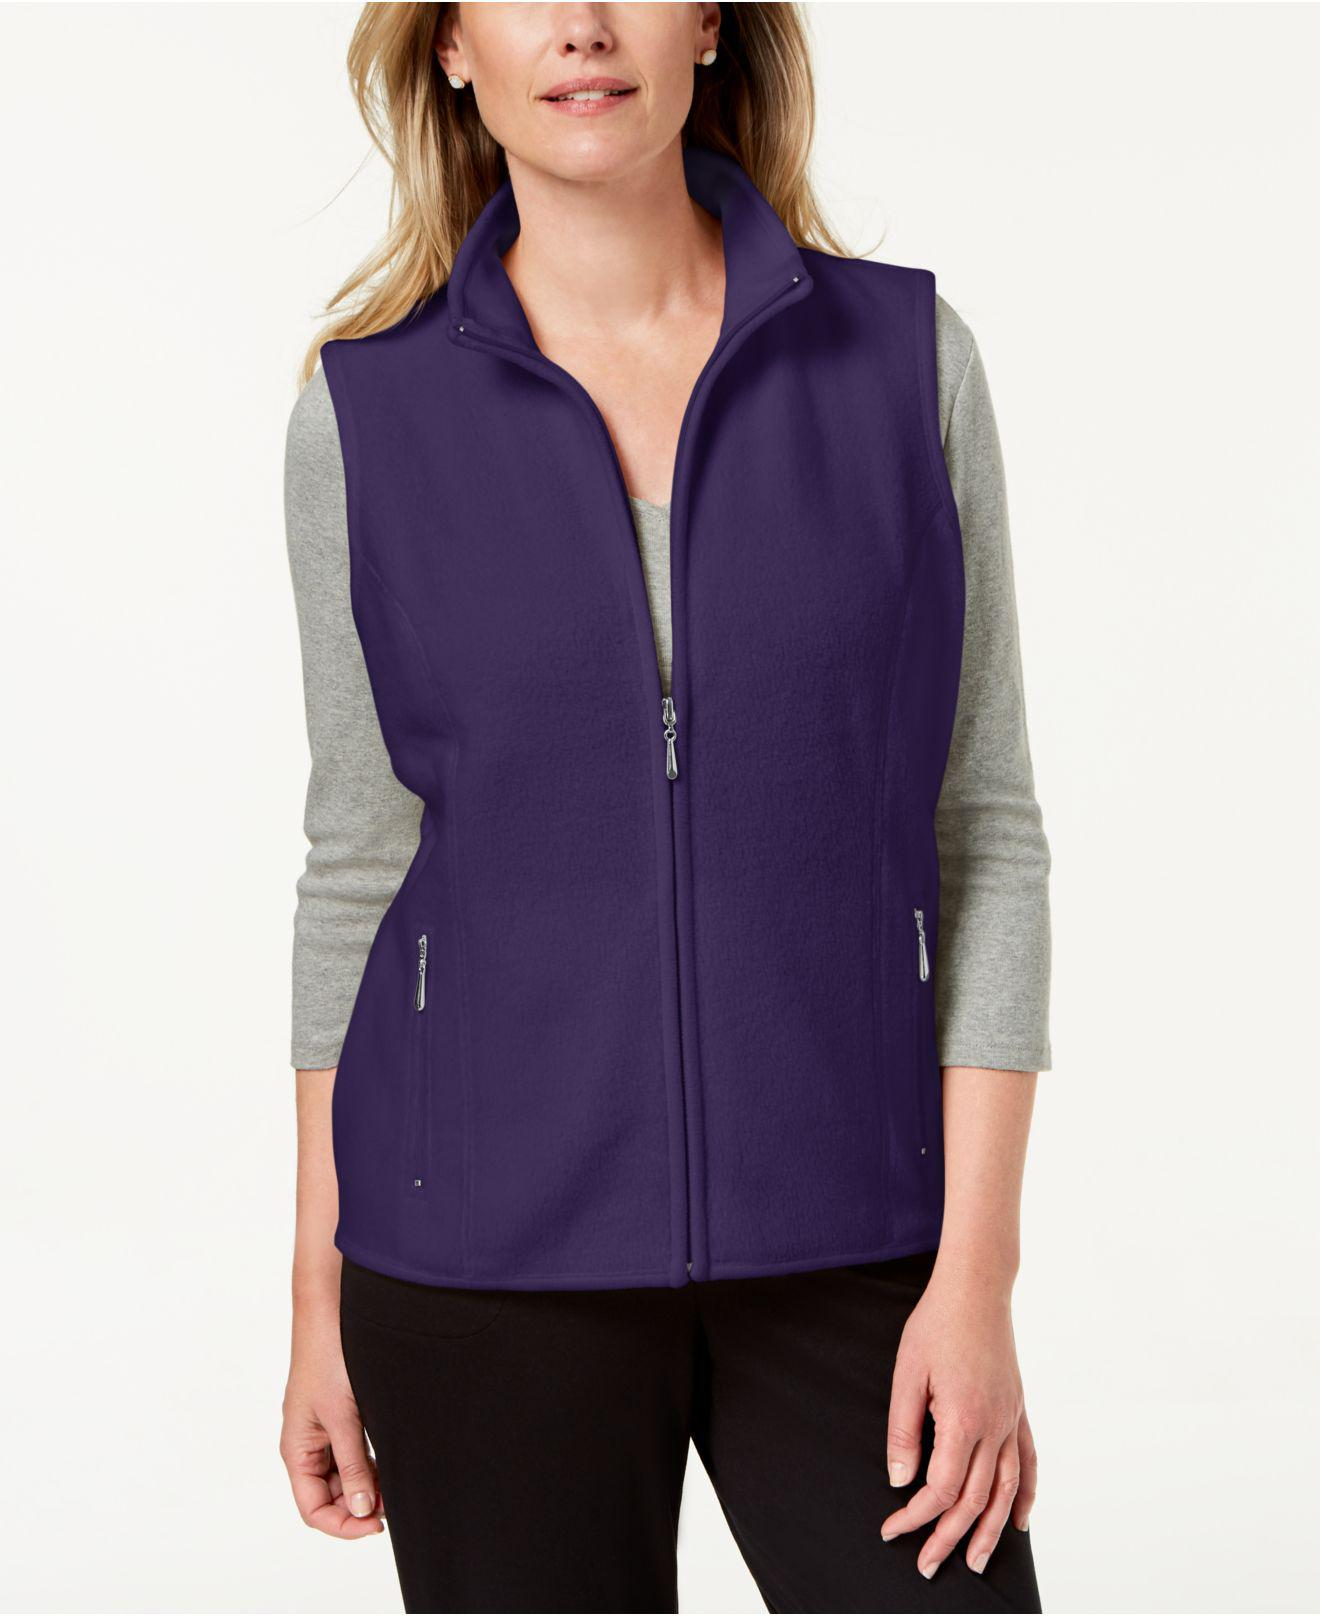 d9ddf3165e0 Karen Scott. Women s Purple Zeroproof Fleece Stand Collar Vest ...